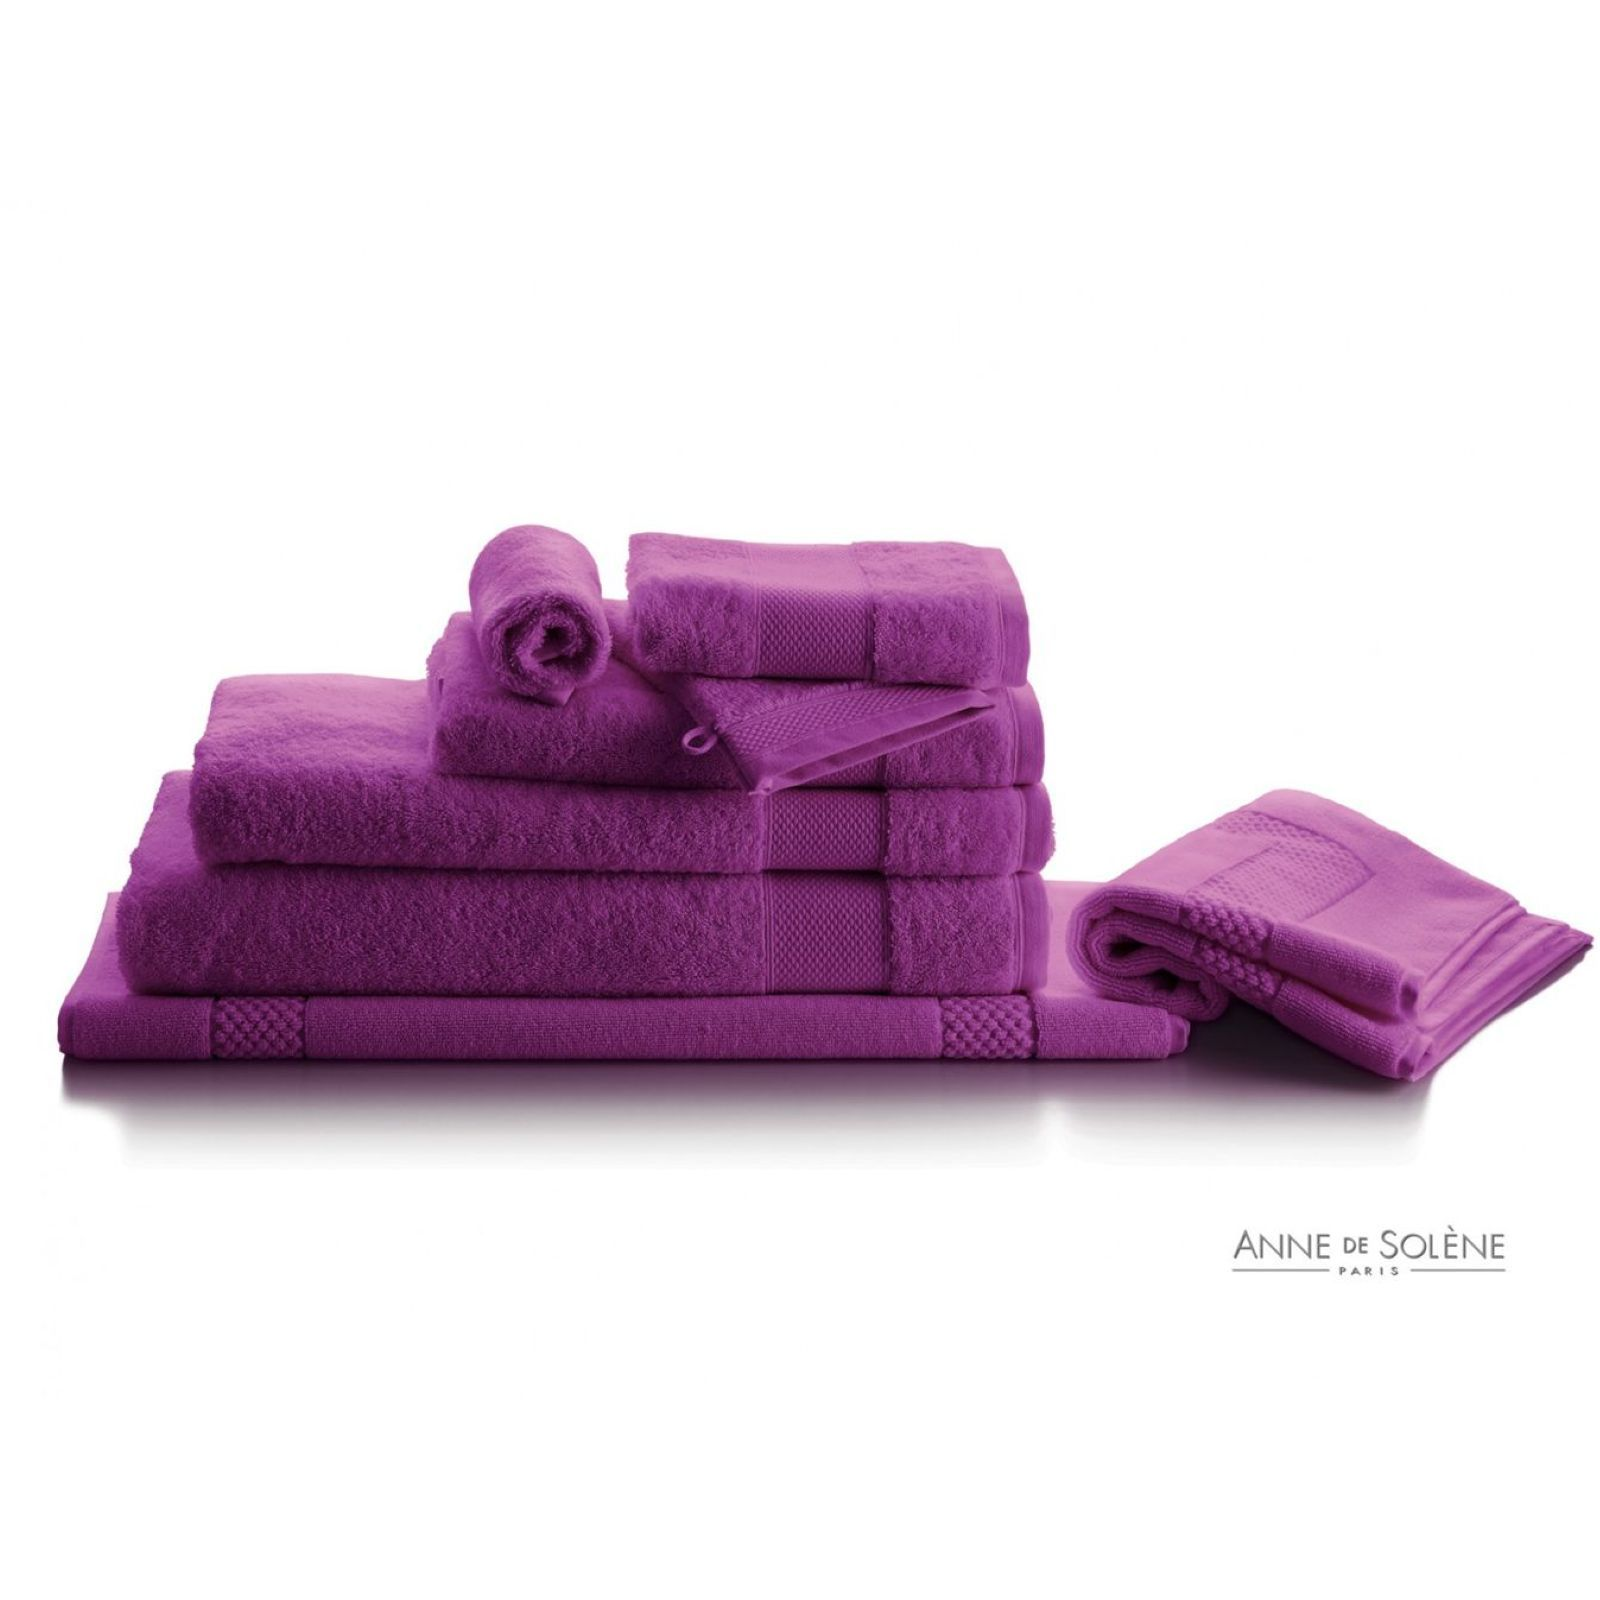 anne de sol ne p tale iris tapis de bain violet. Black Bedroom Furniture Sets. Home Design Ideas